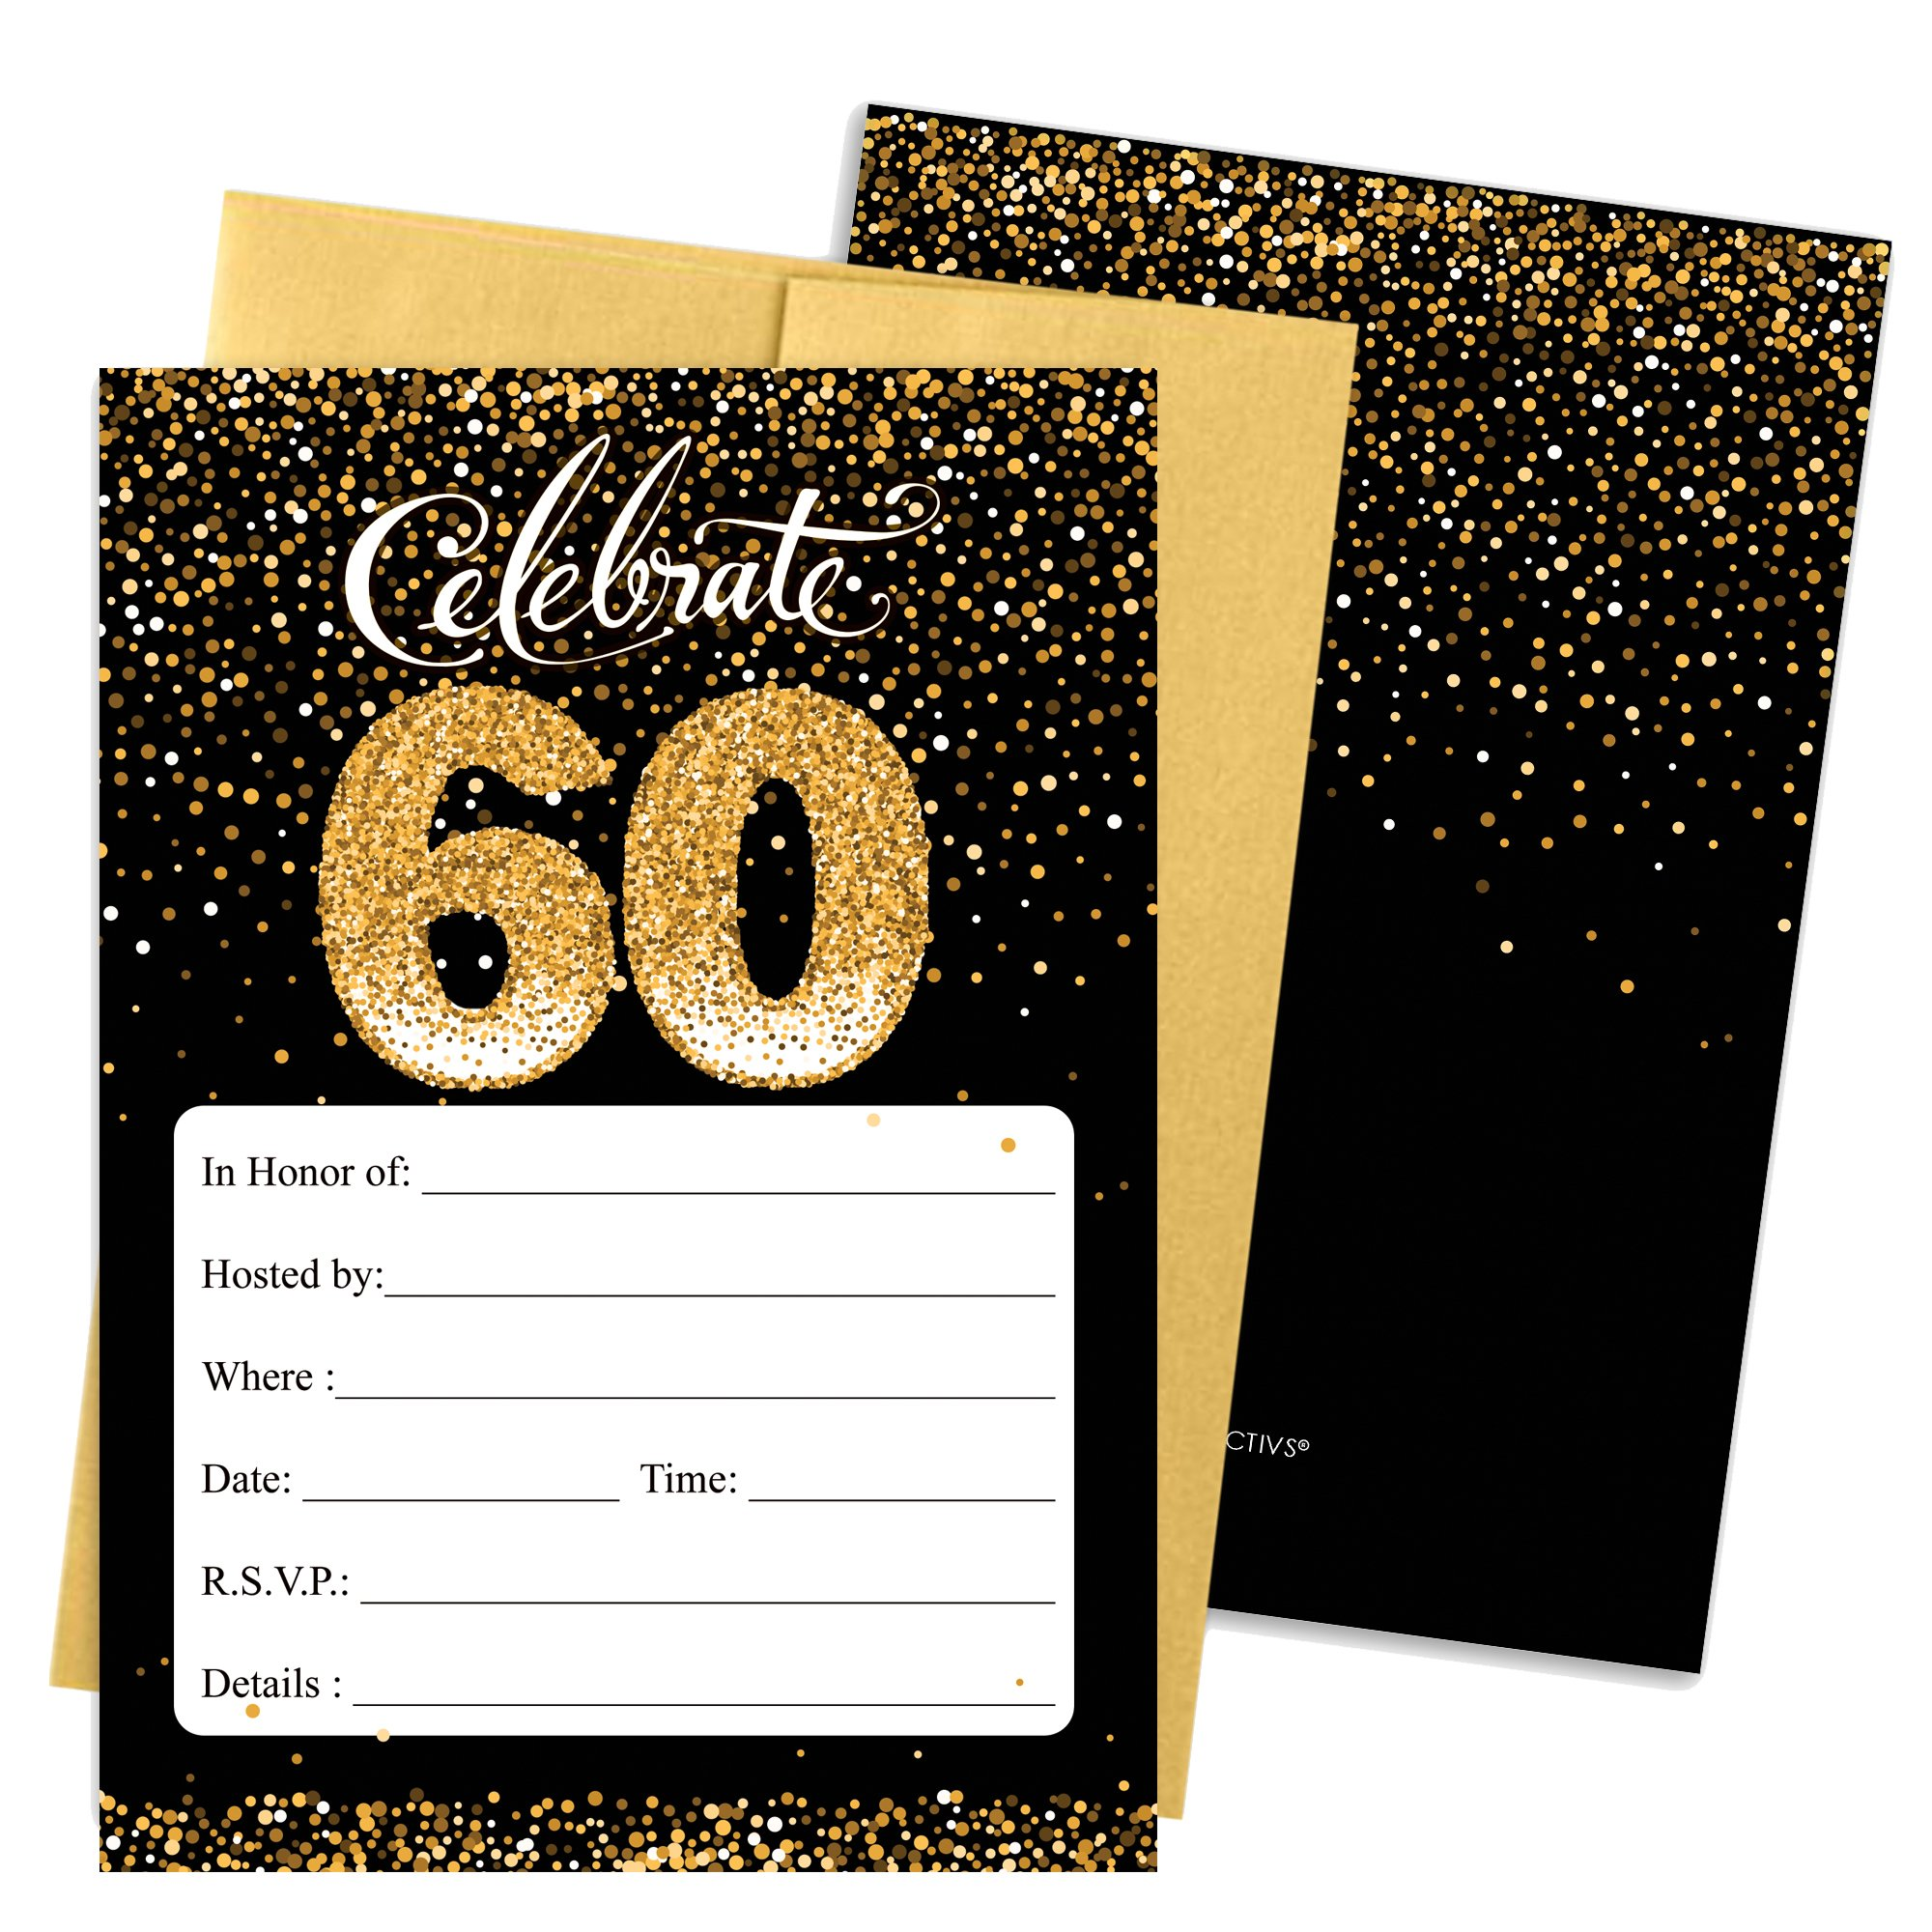 60th Birthday Party Invitation Cards with Envelopes, 25 Count (Black and Gold)